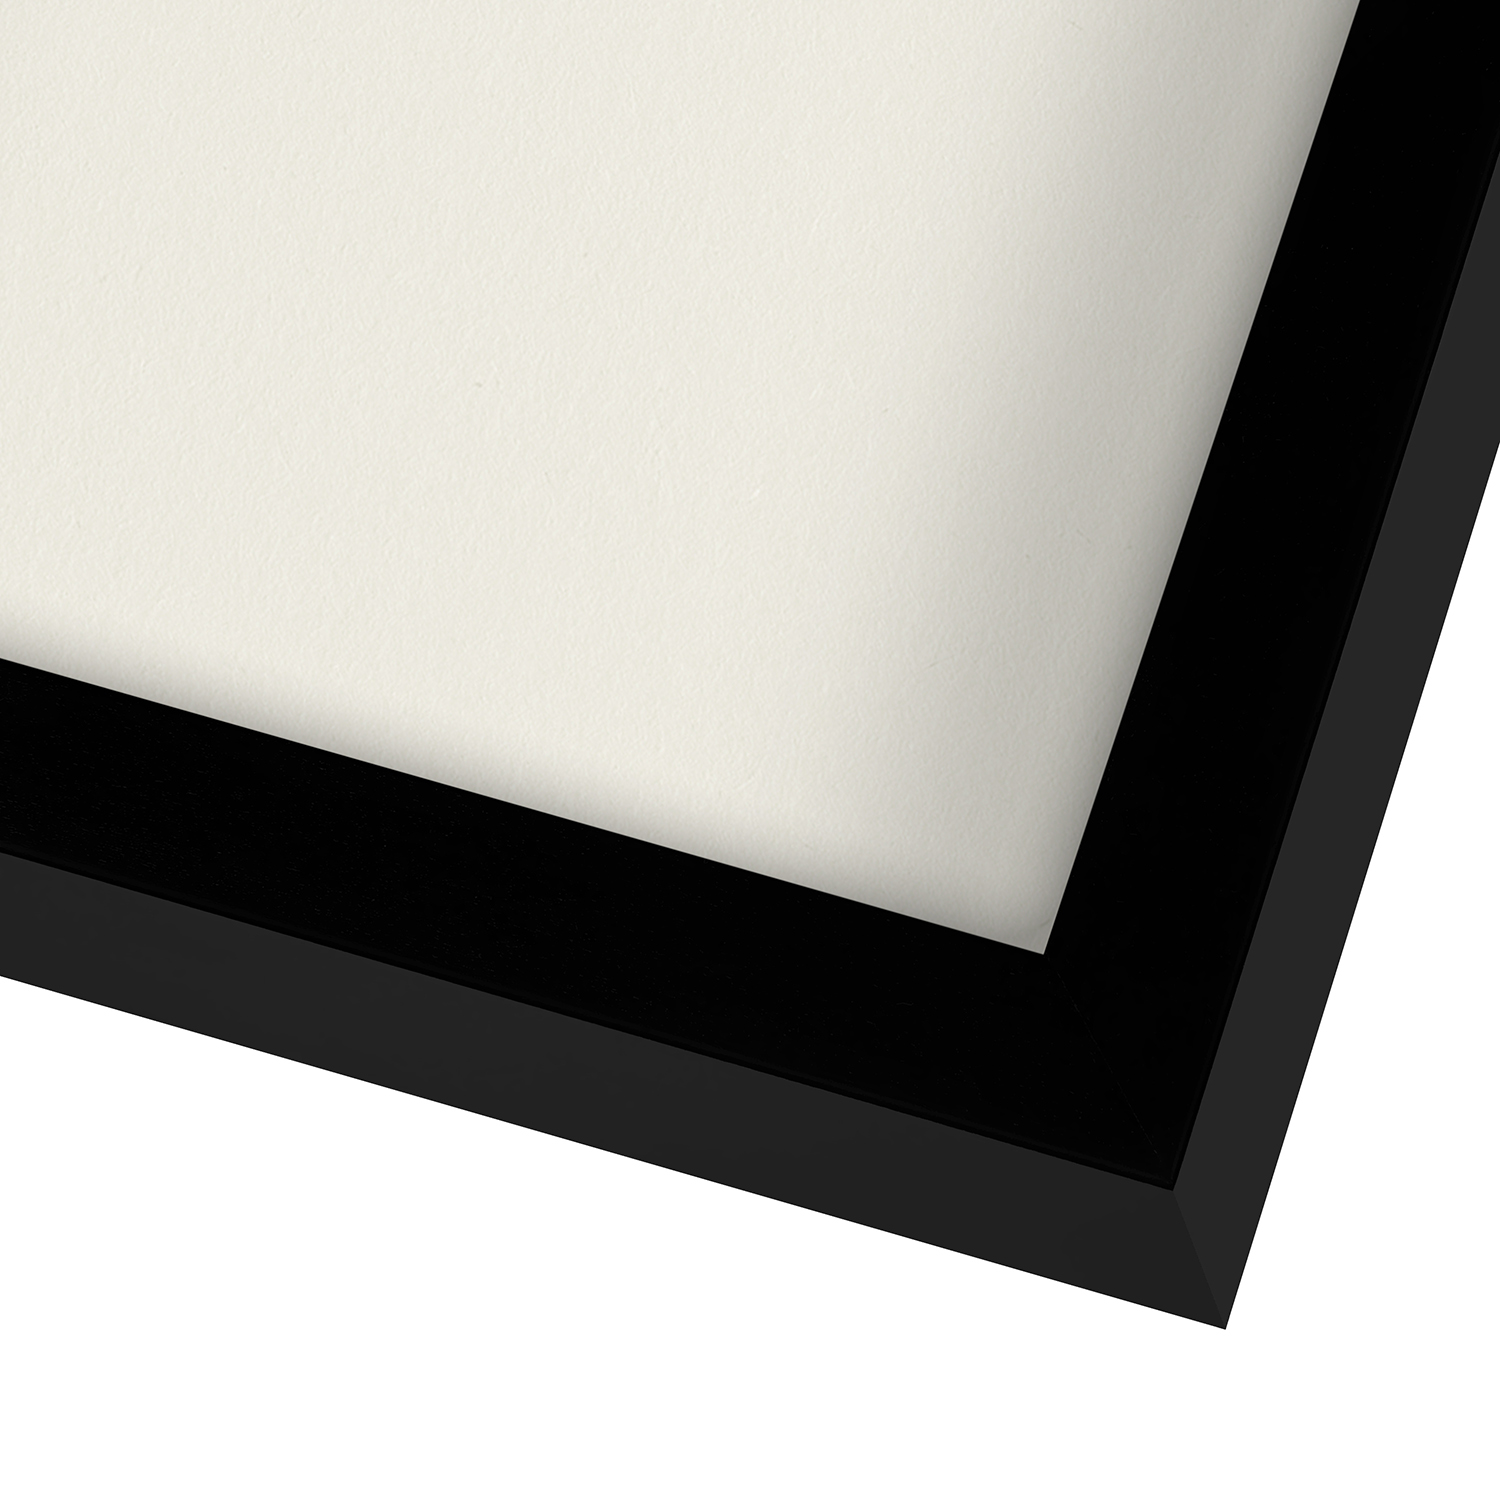 miniature 11 - Americanflat Shadow Box Frame with Soft Linen Back - Variety of Sizes